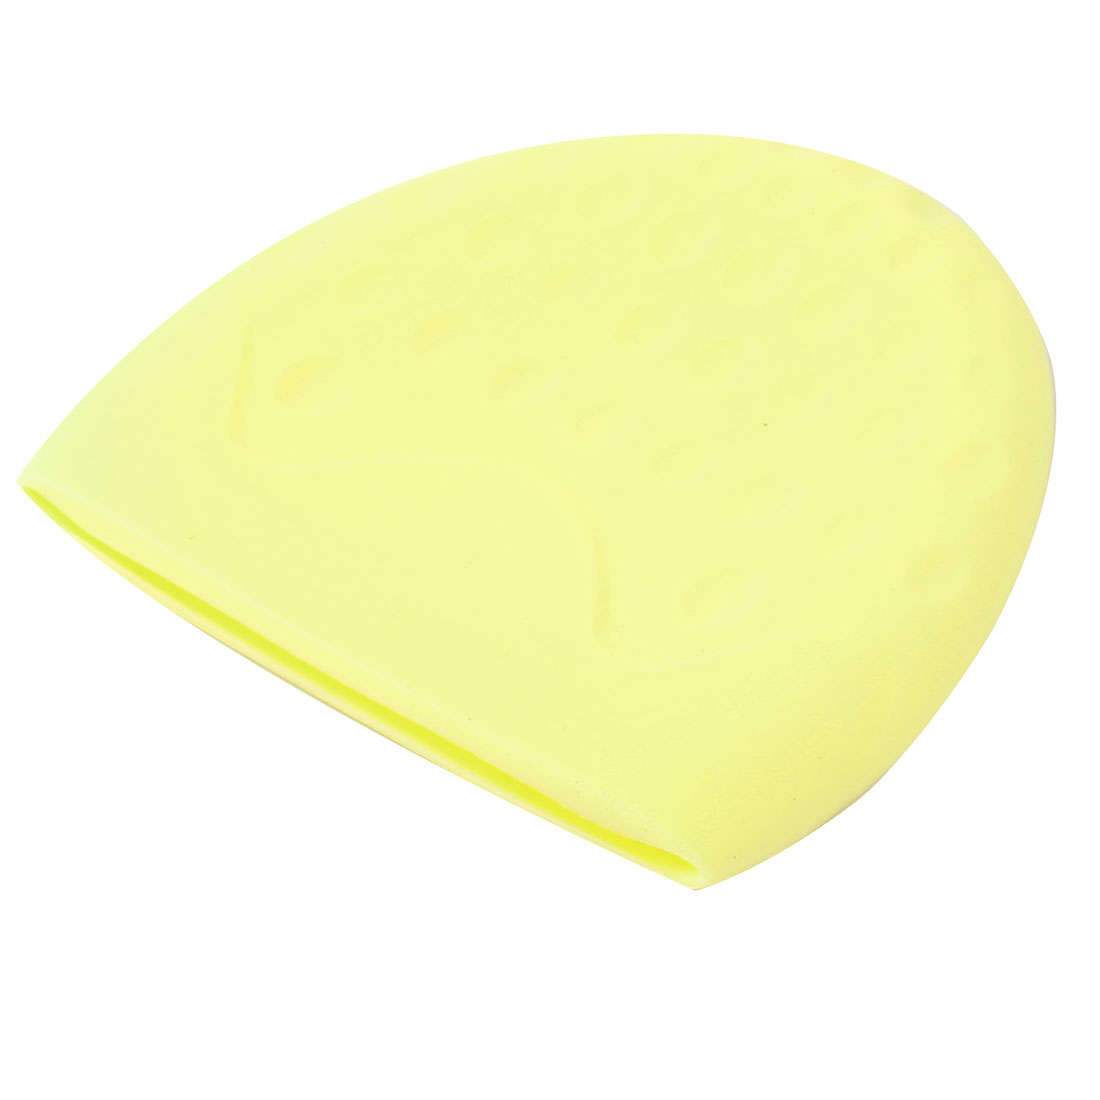 Camping Traveling Strawberry Shaped Portable Foldable Tooth Cup Silicone Cup Yellow